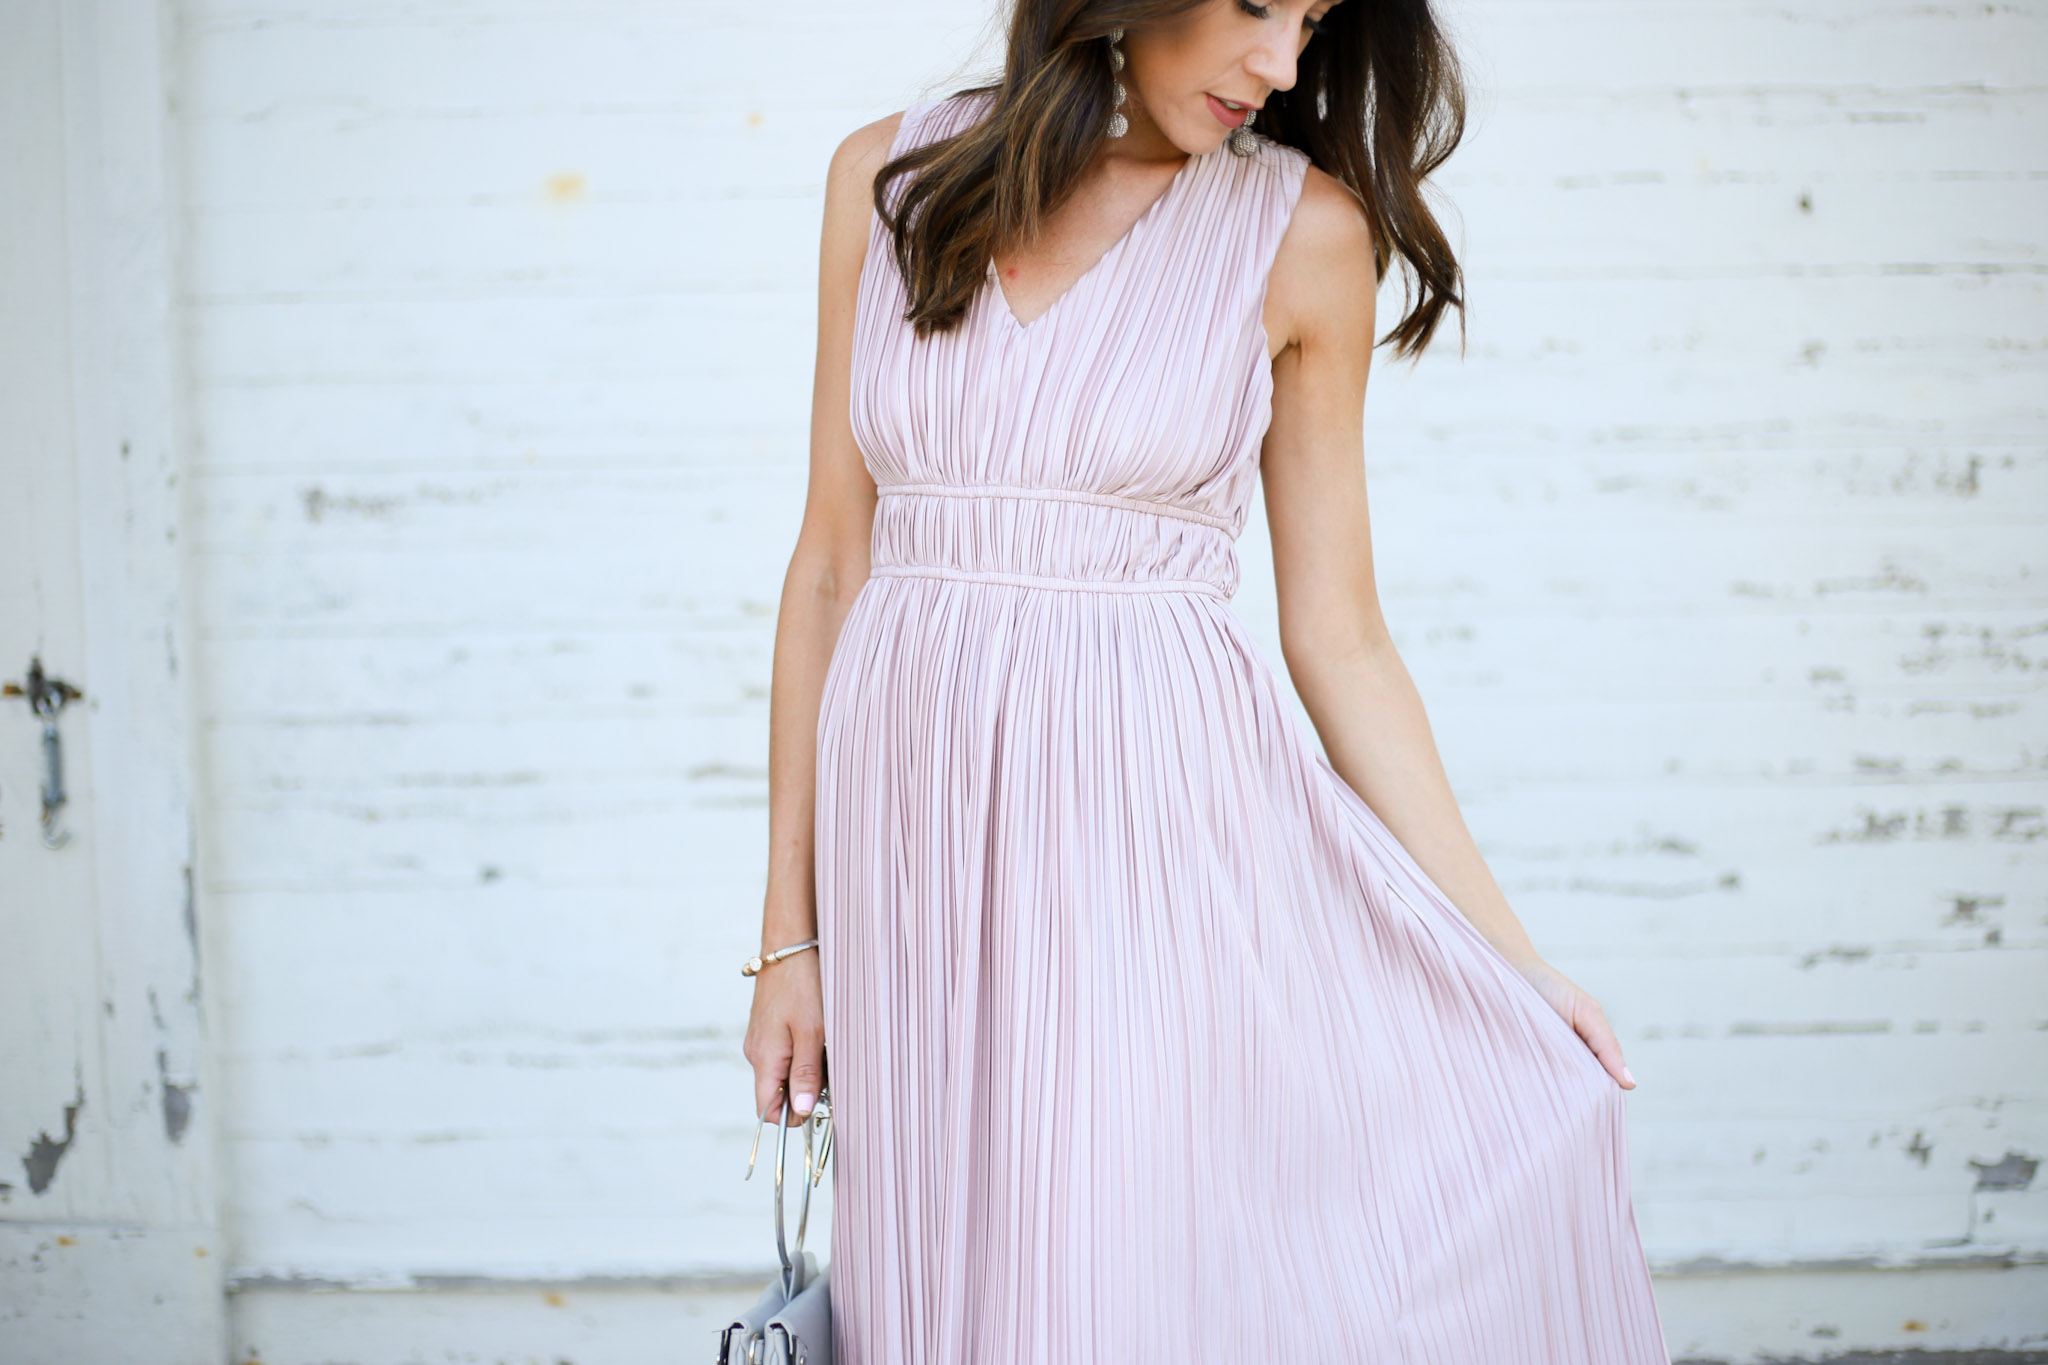 The must have dress under $70 - Perfect Affordable Dress For a Summer Wedding by Boston fashion blogger Living Life Pretty